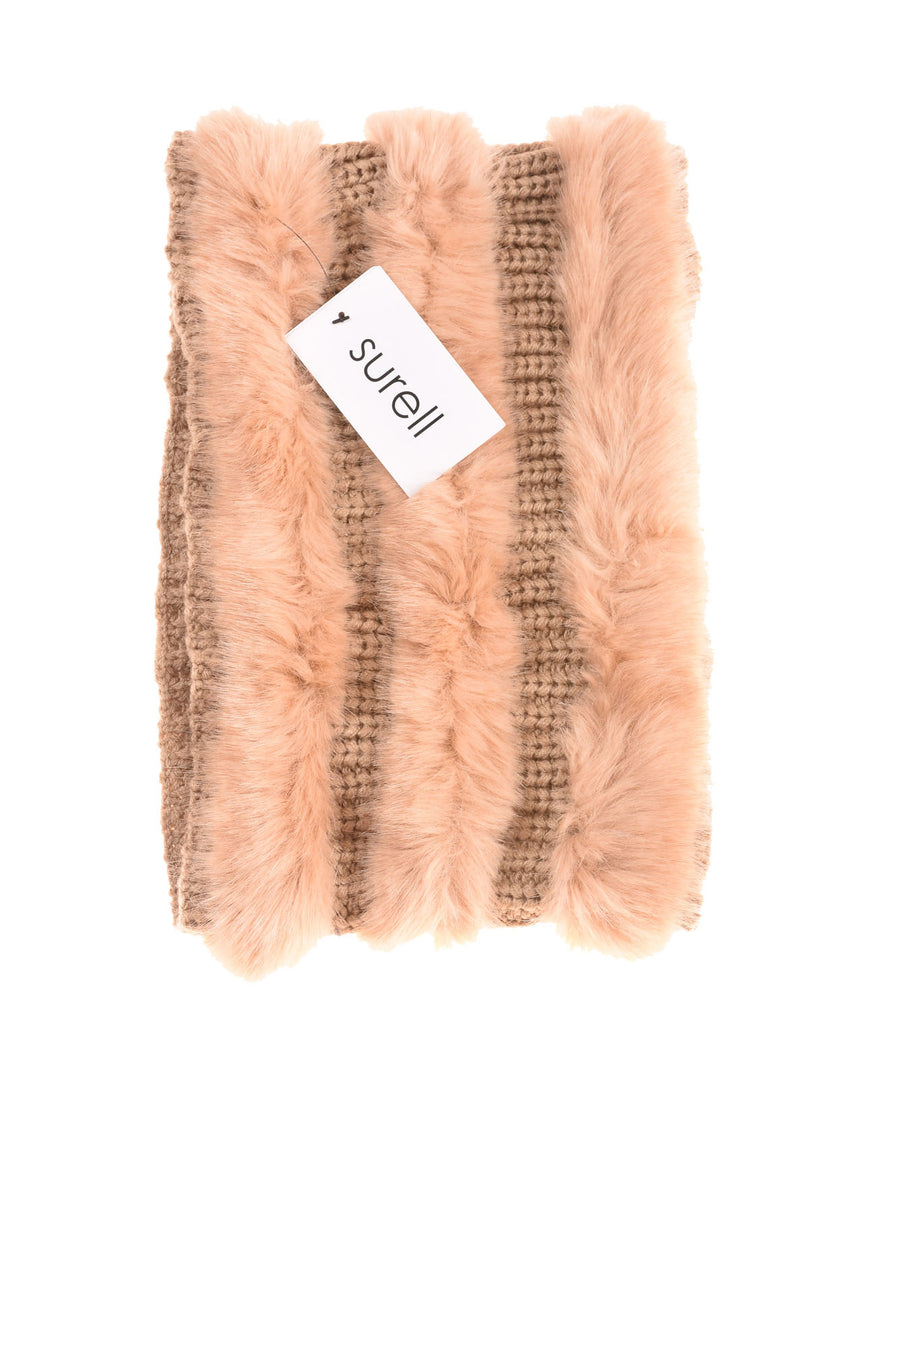 NEW Surell Women's Scarf One Size Tan